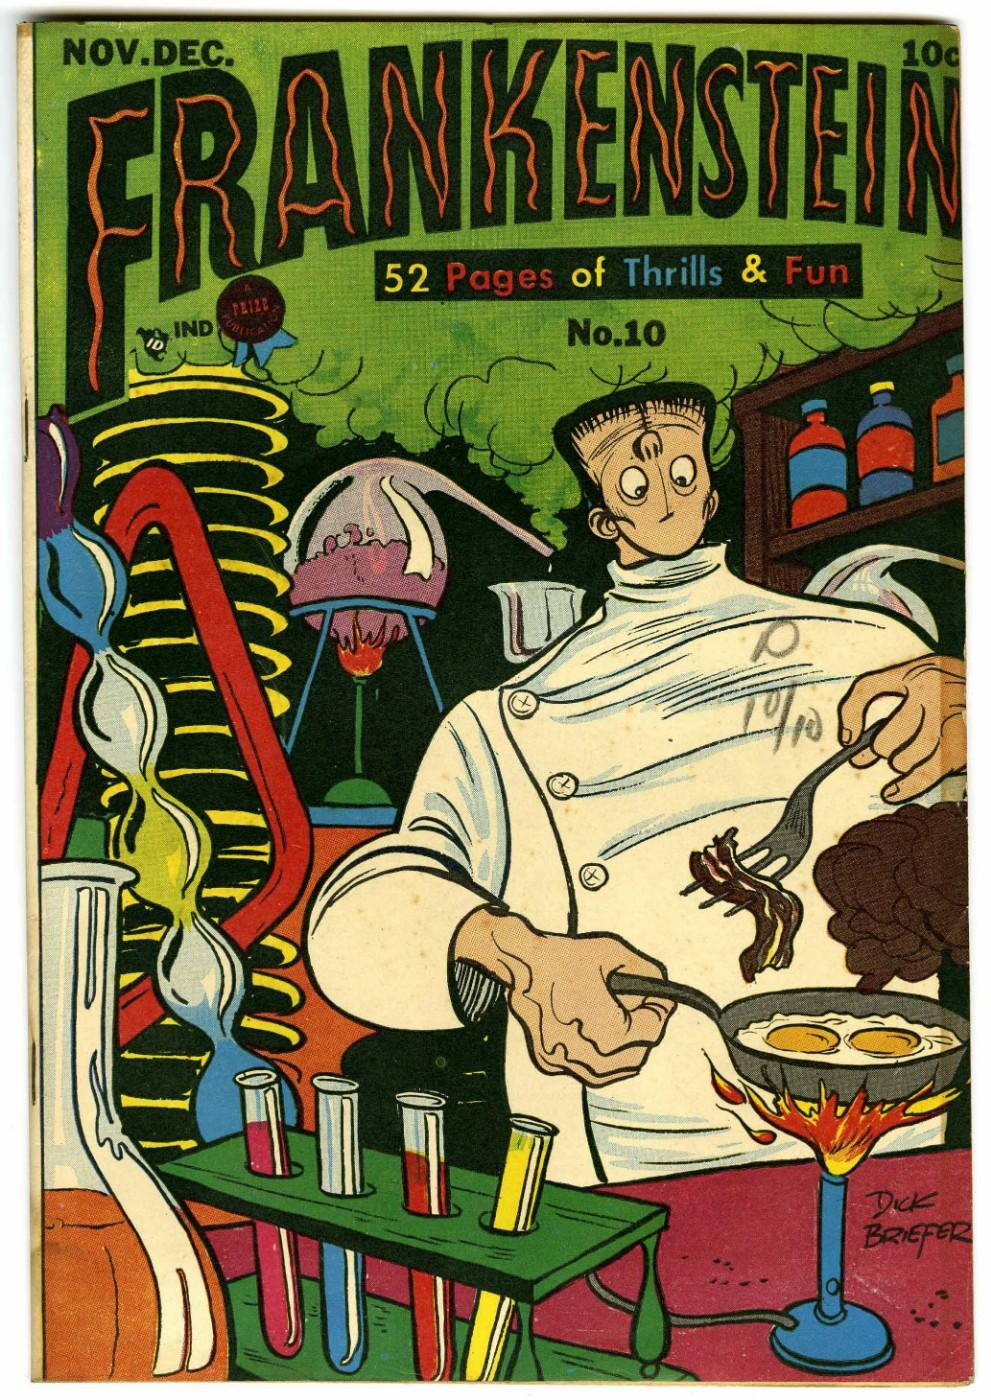 Dick Briefer (1915 – 1980), Frankenstein, no. 10, New York: Prize Comics